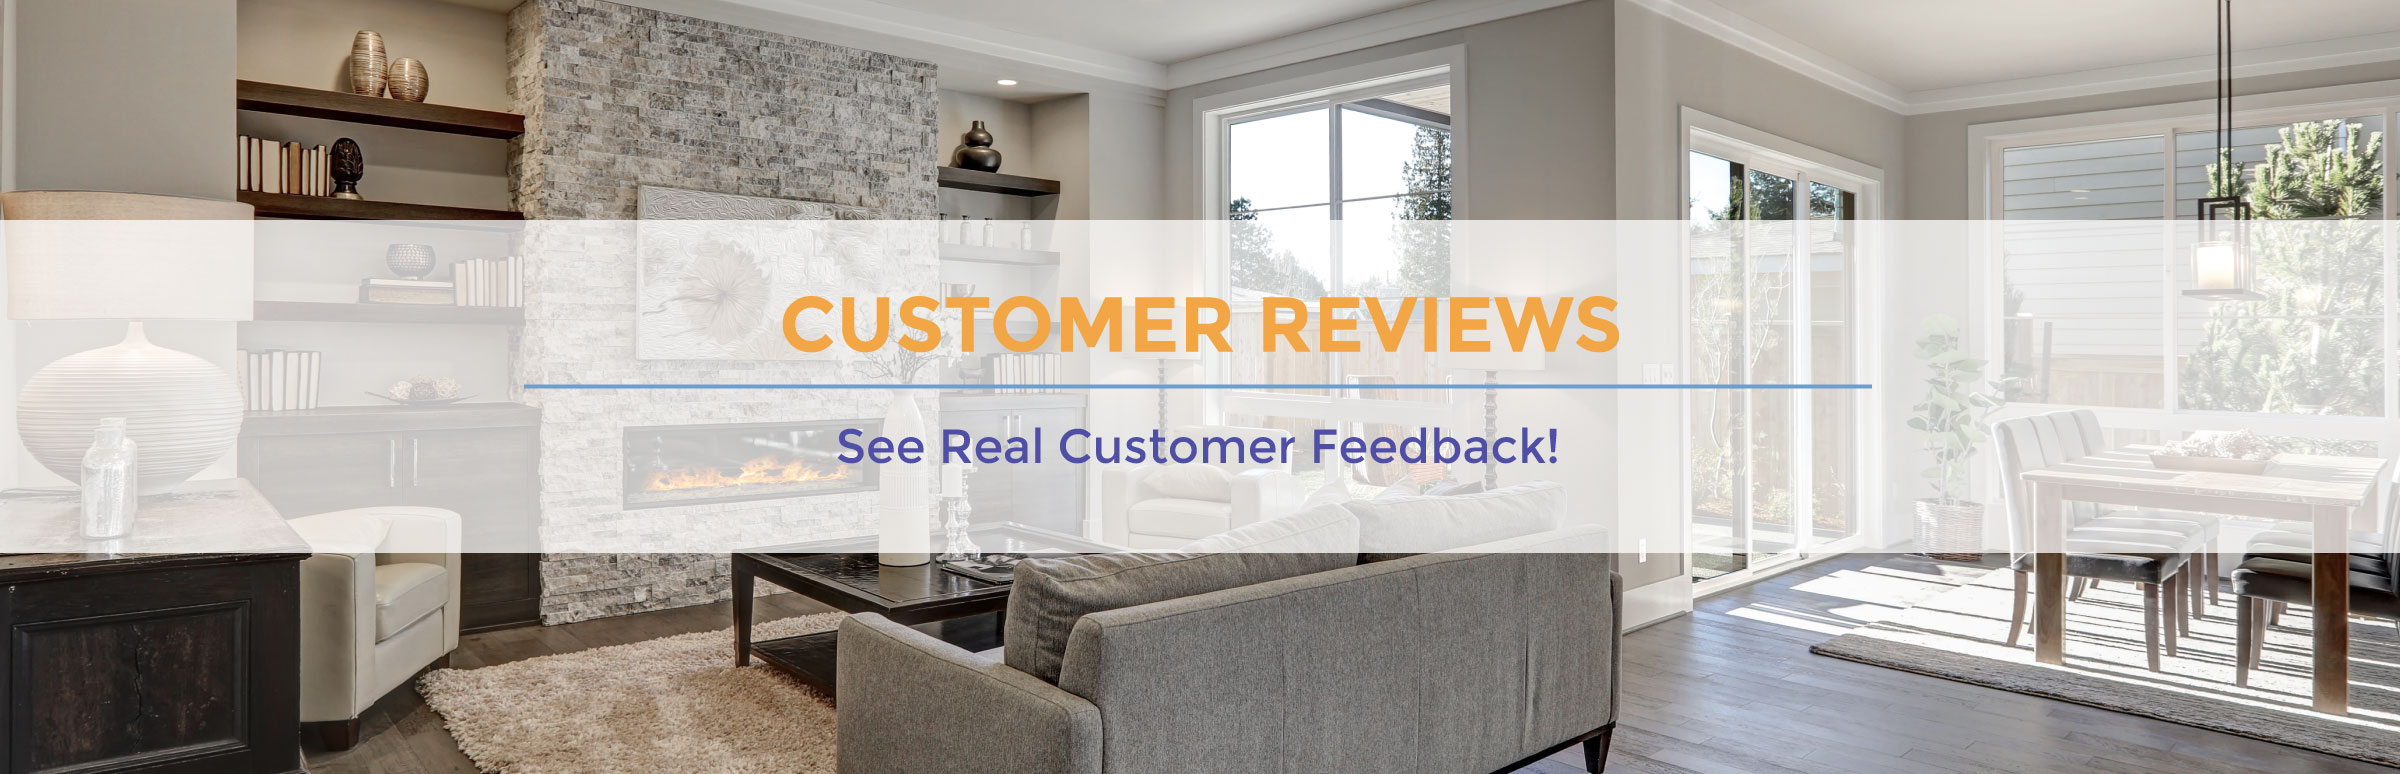 All Appliance Service Customer Reviews - See What Our Customers are Saying!